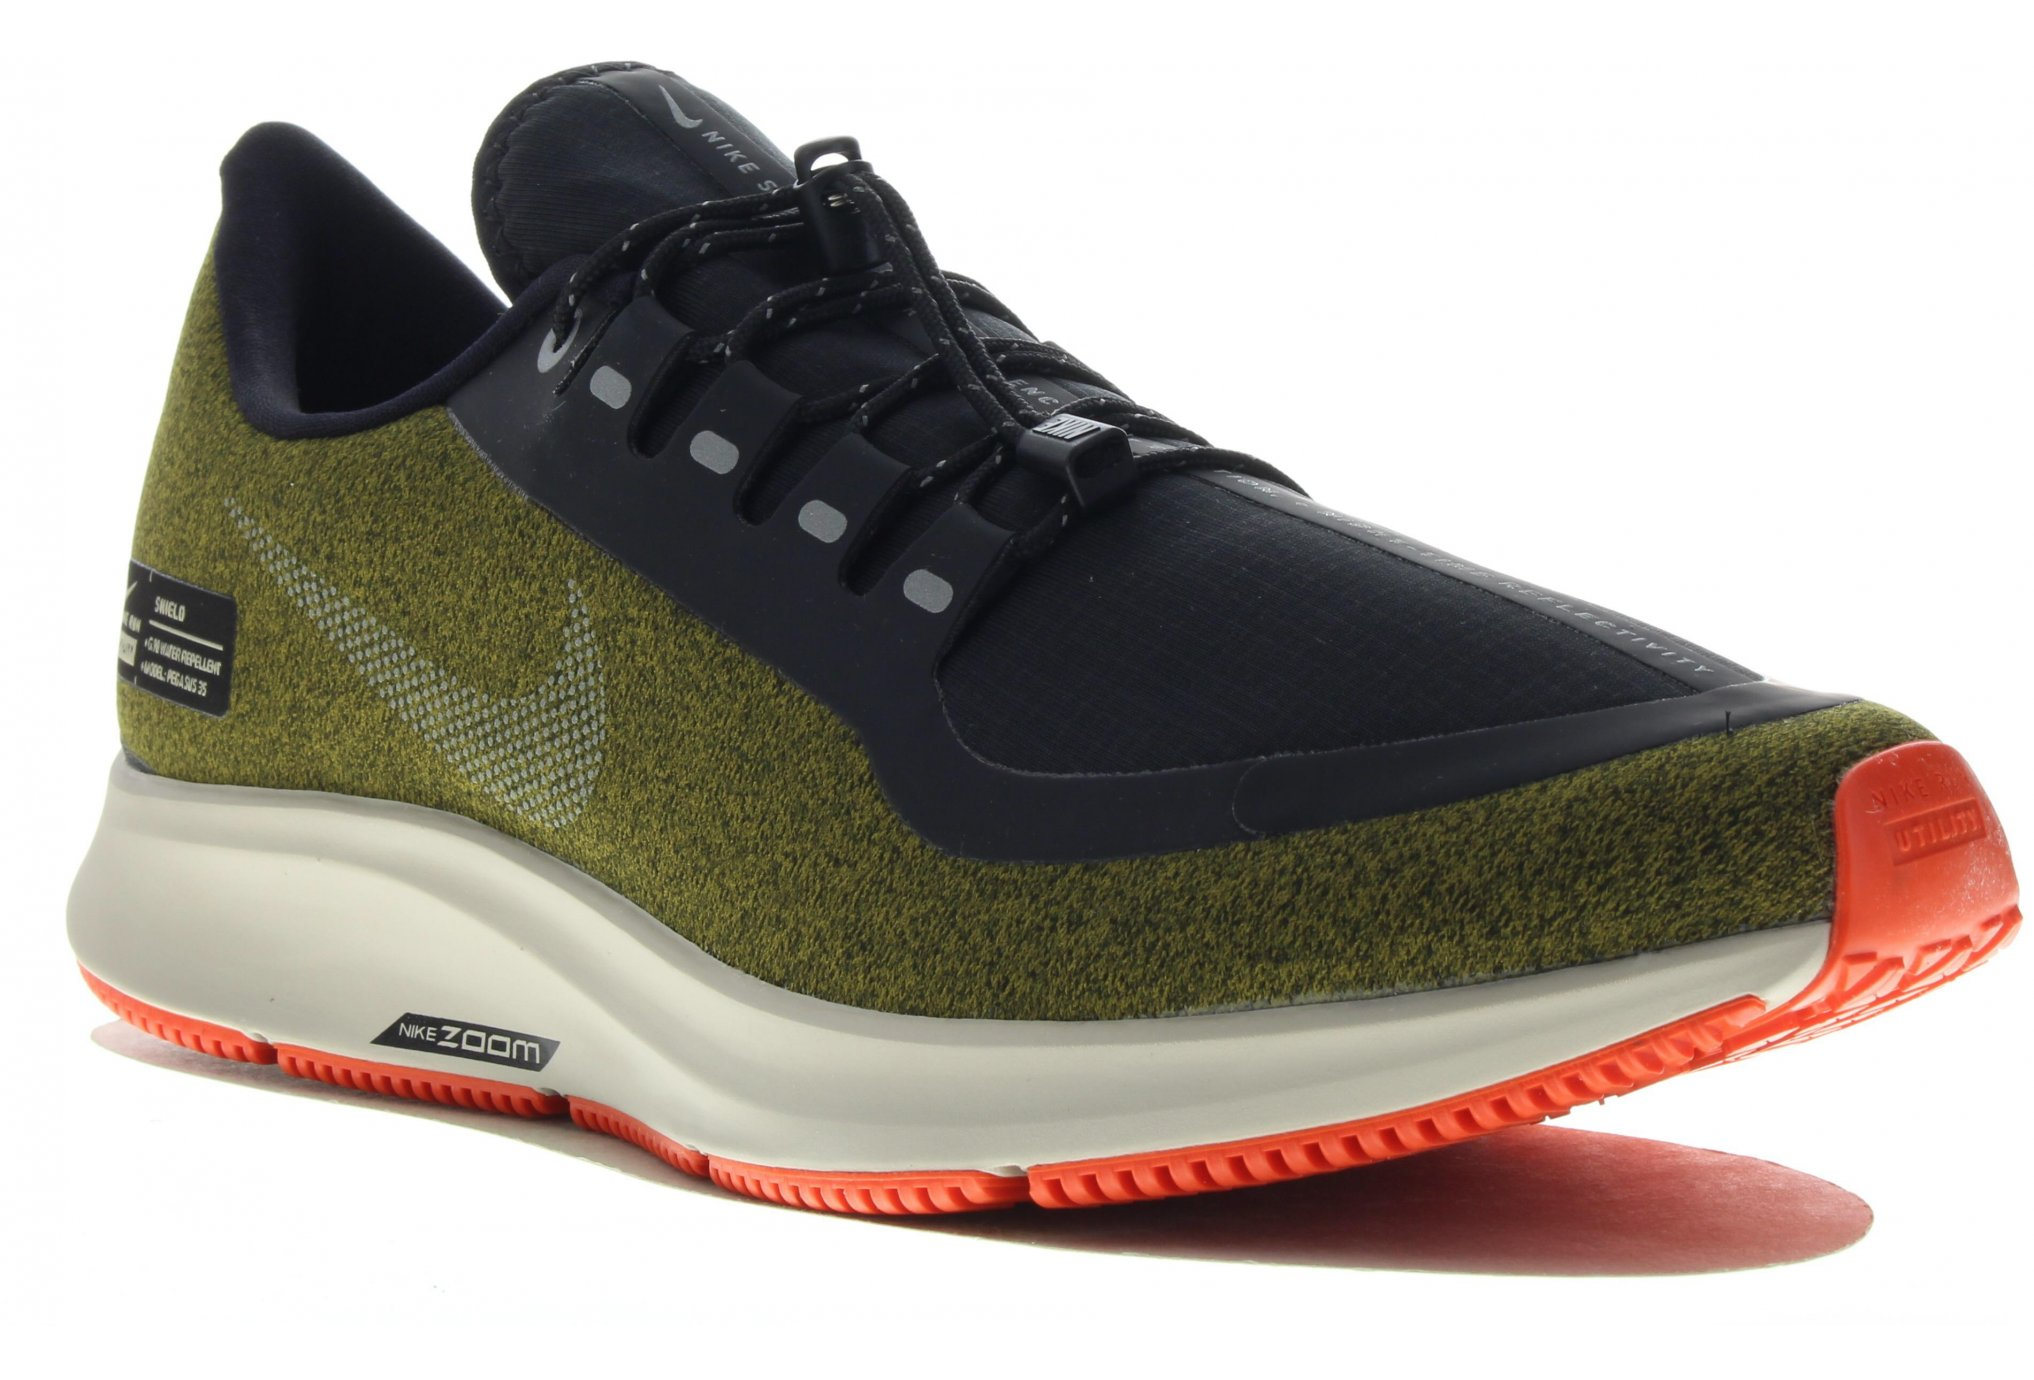 nike-air-zoom-pegasus-35-shield-m-chaussures-homme-267466-1-fz